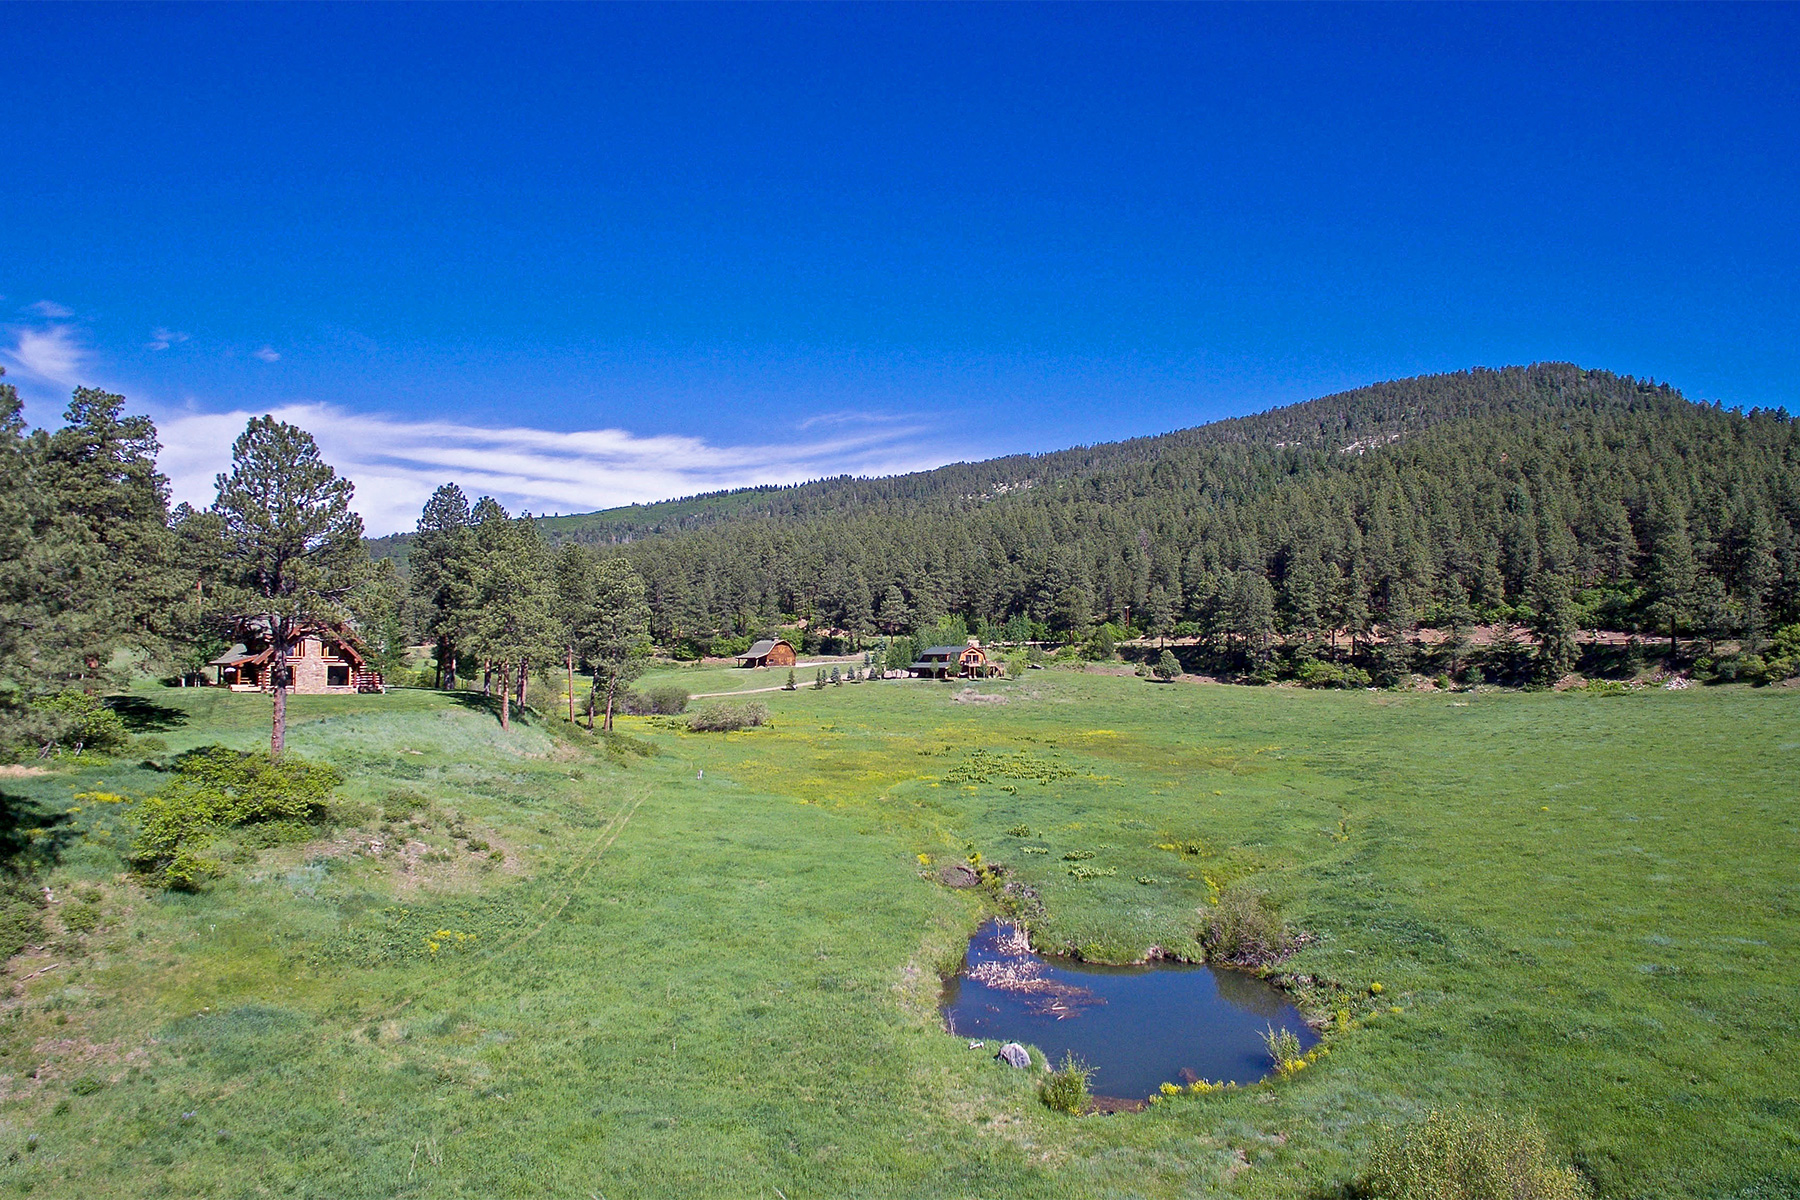 Casa Unifamiliar por un Venta en Old Ponderosa Ranch 10676 CR 502 Bayfield, Colorado 81122 Estados Unidos